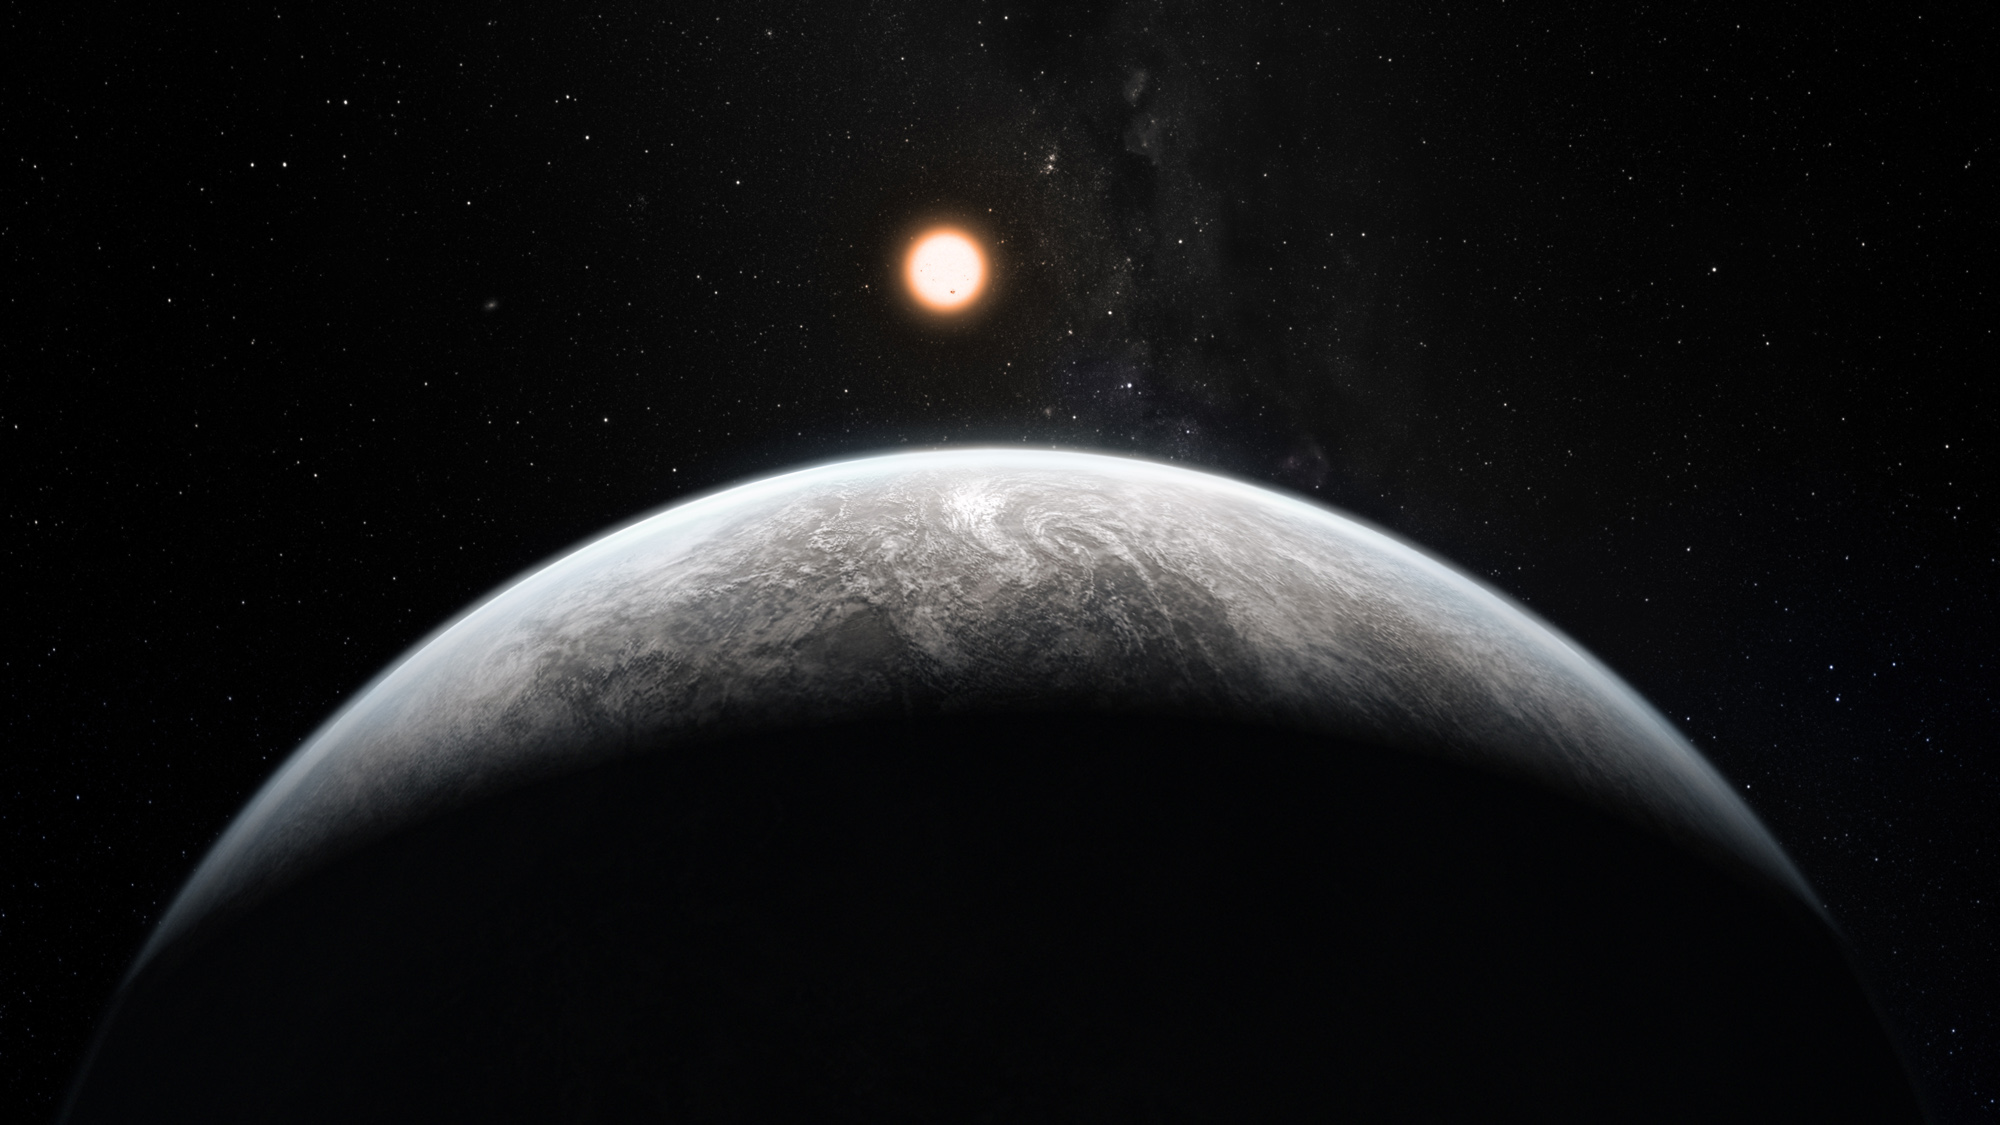 'Super-Earth,' 1 of 50 Newfound Alien Planets, Could Potentially Support Life